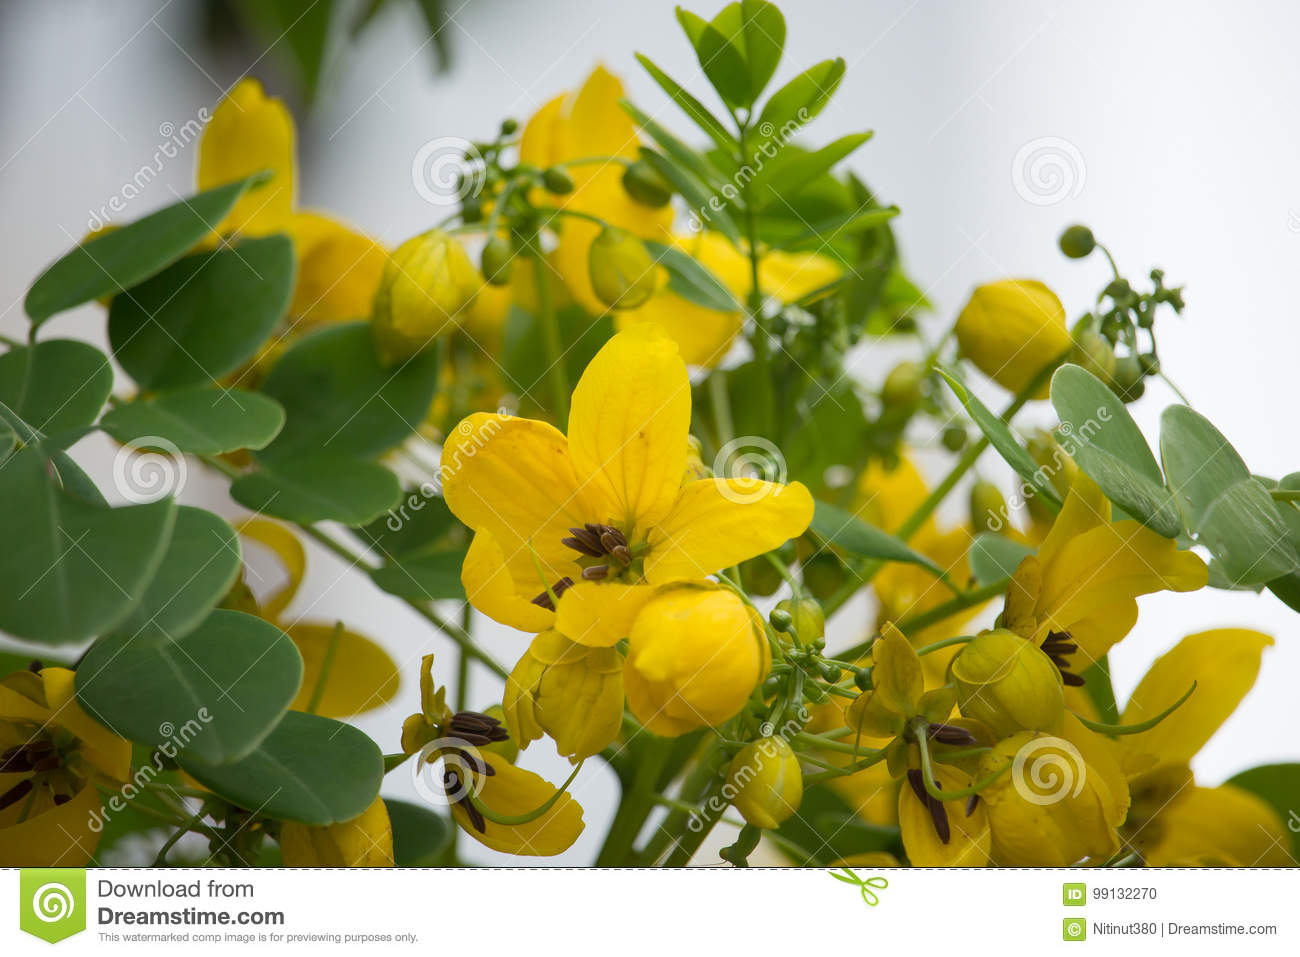 Yellow flower of thai copper pod or cassod tree stock photo image download yellow flower of thai copper pod or cassod tree stock photo image of herbs mightylinksfo